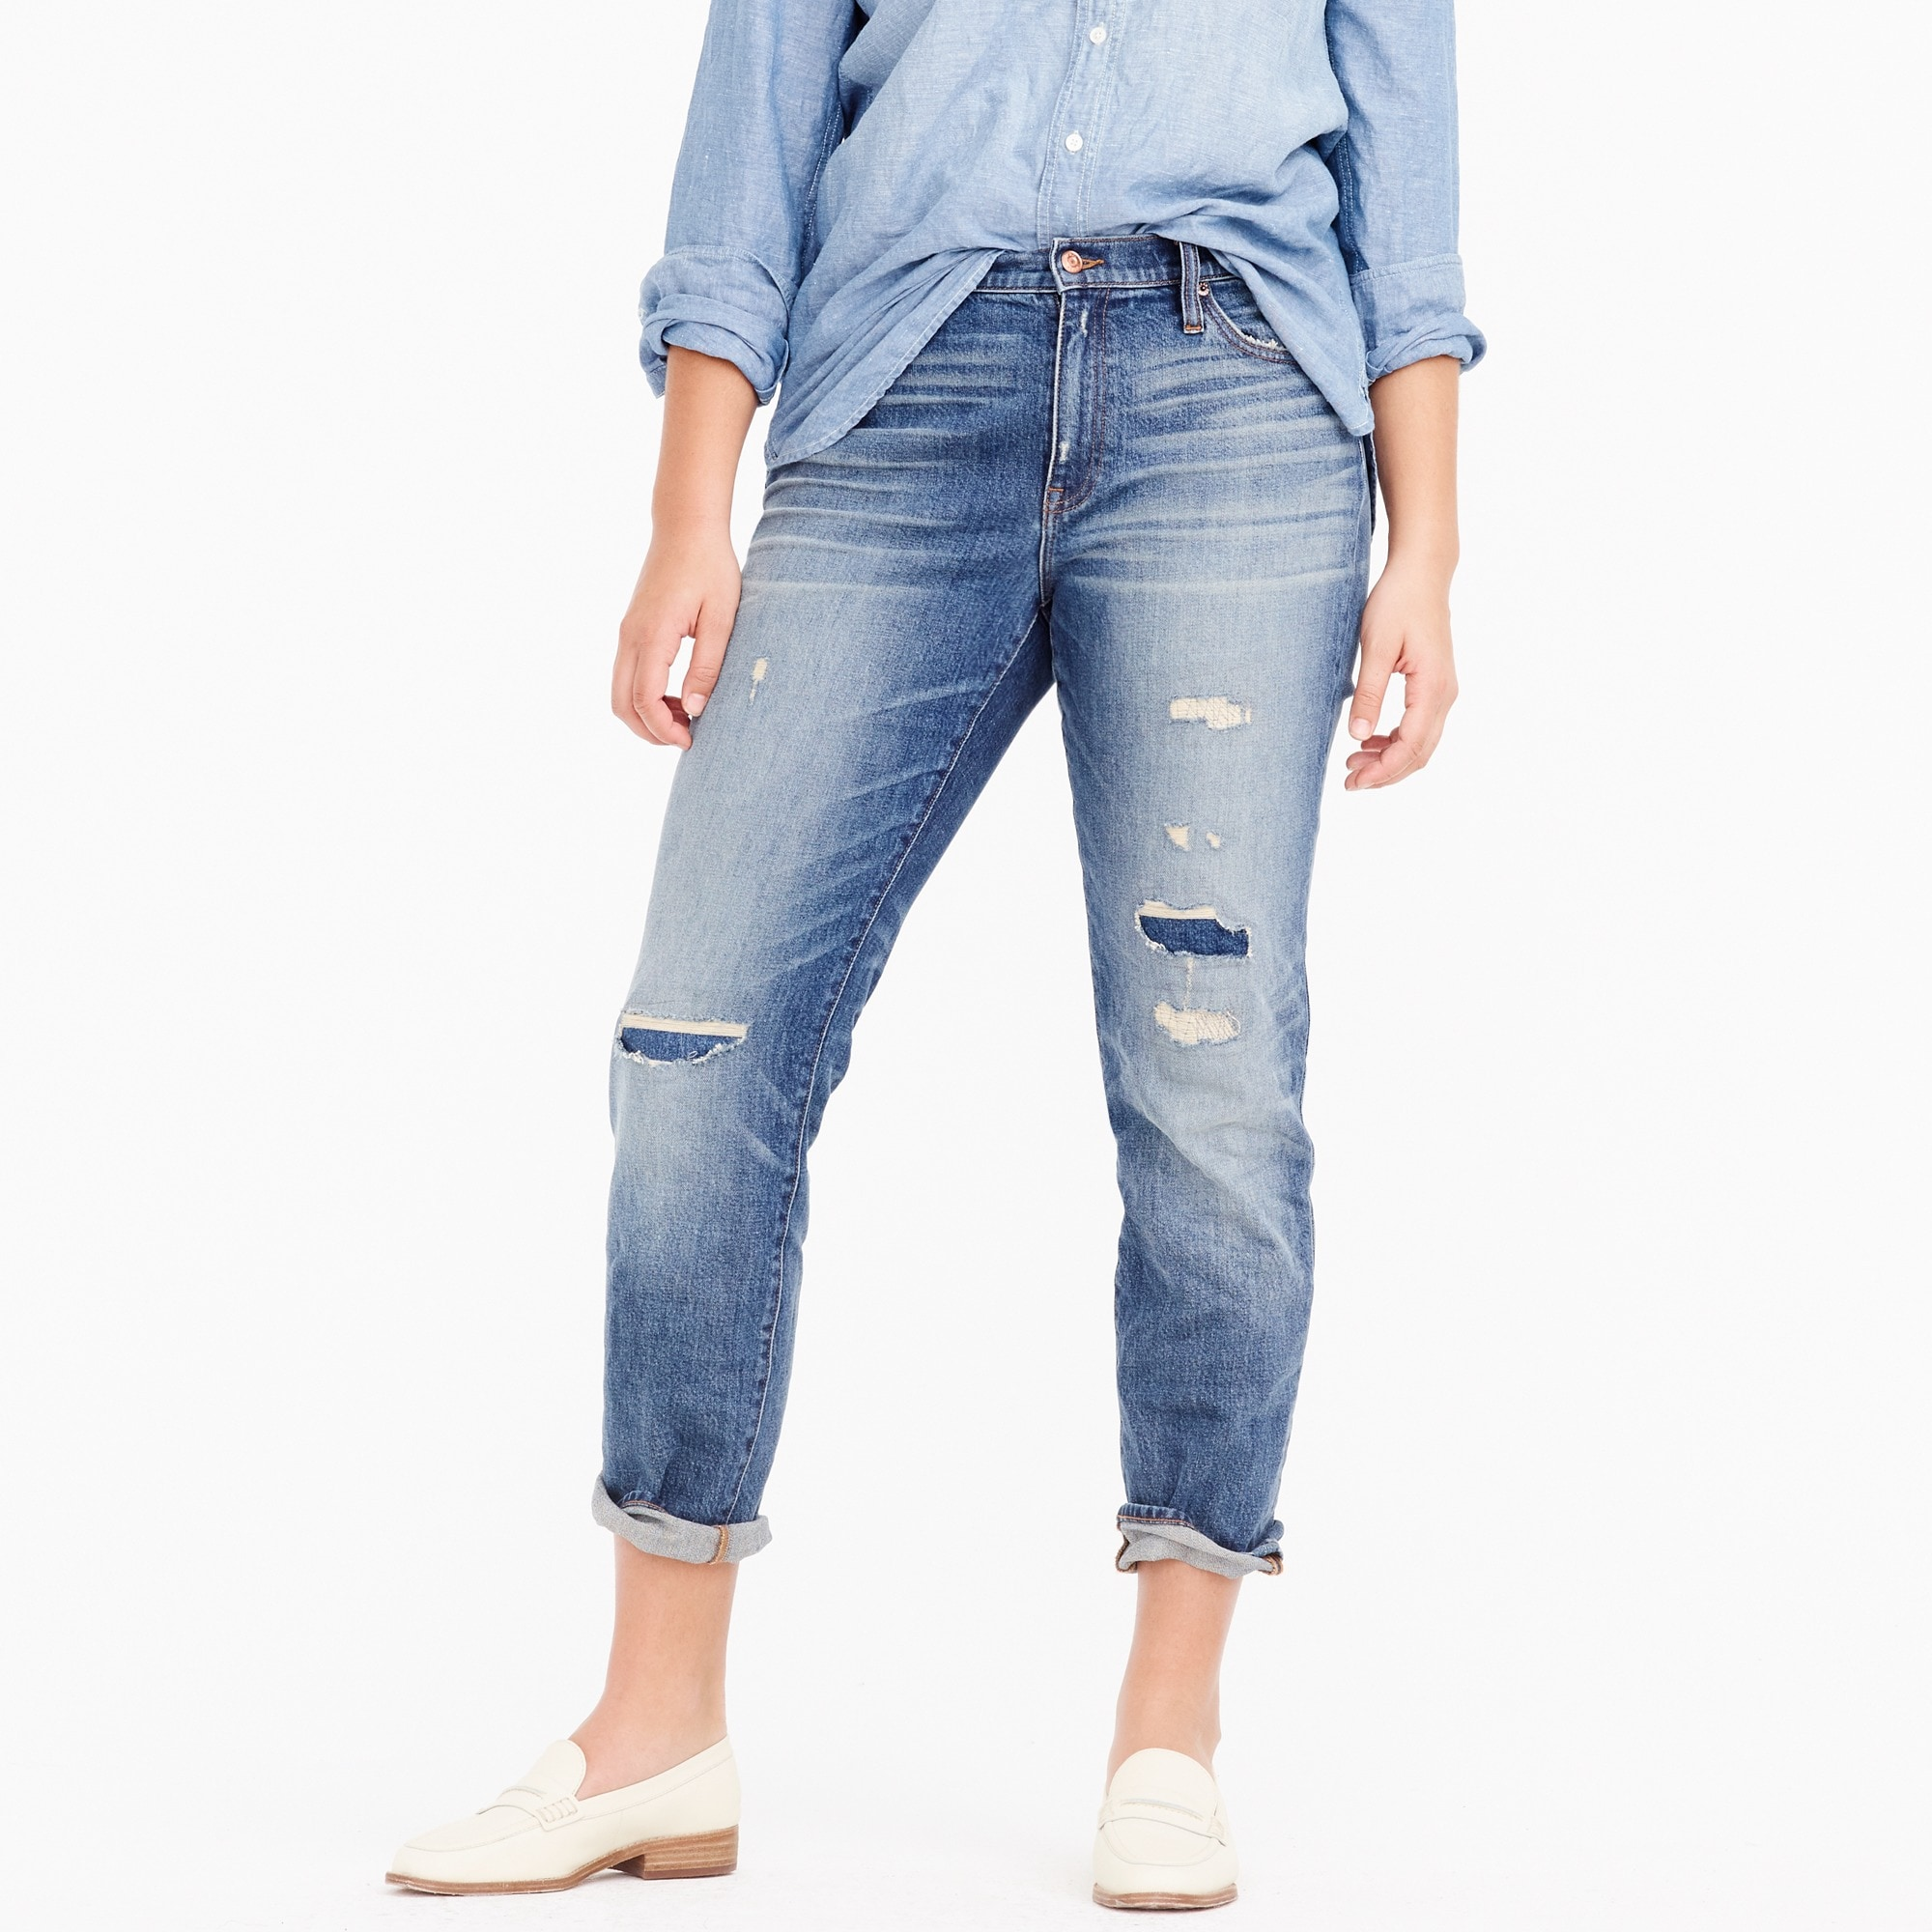 Slim boyfriend jean in charles wash